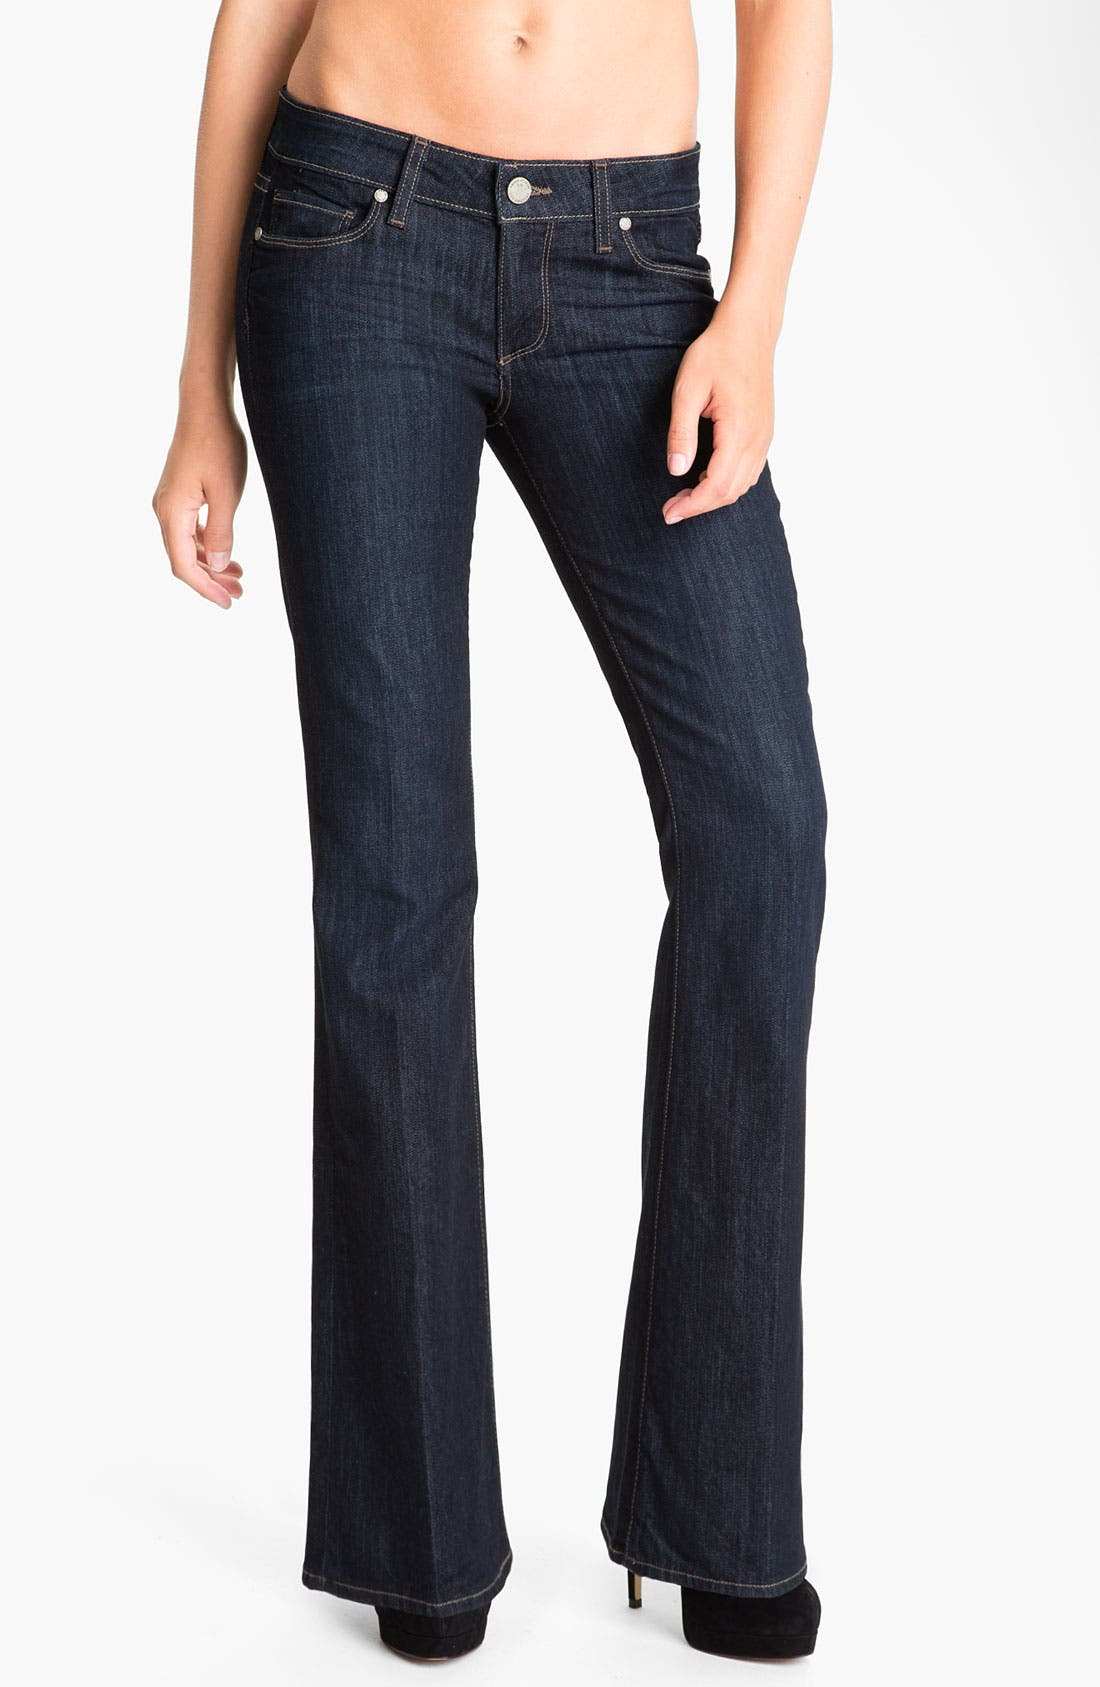 Alternate Image 1 Selected - Paige Denim 'Skyline' Bootcut Jeans (Dream) (Petite)